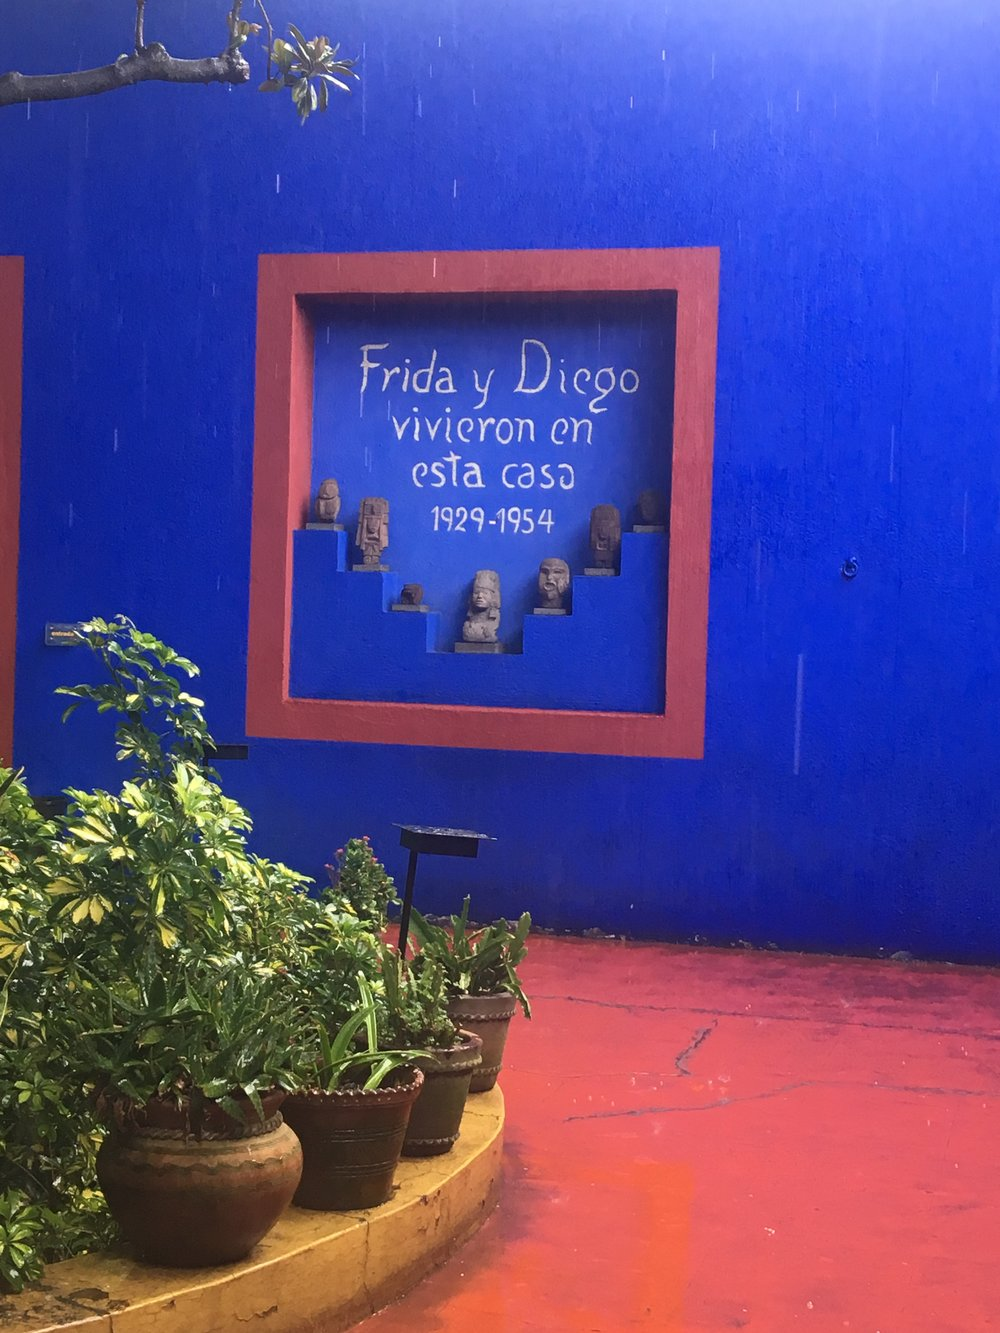 Being near Frida and Diego's house was a big draw for us- so we went there to visit on the first day. There is another post coming about our visit, but rest assured, we went there with whistles and bells on.